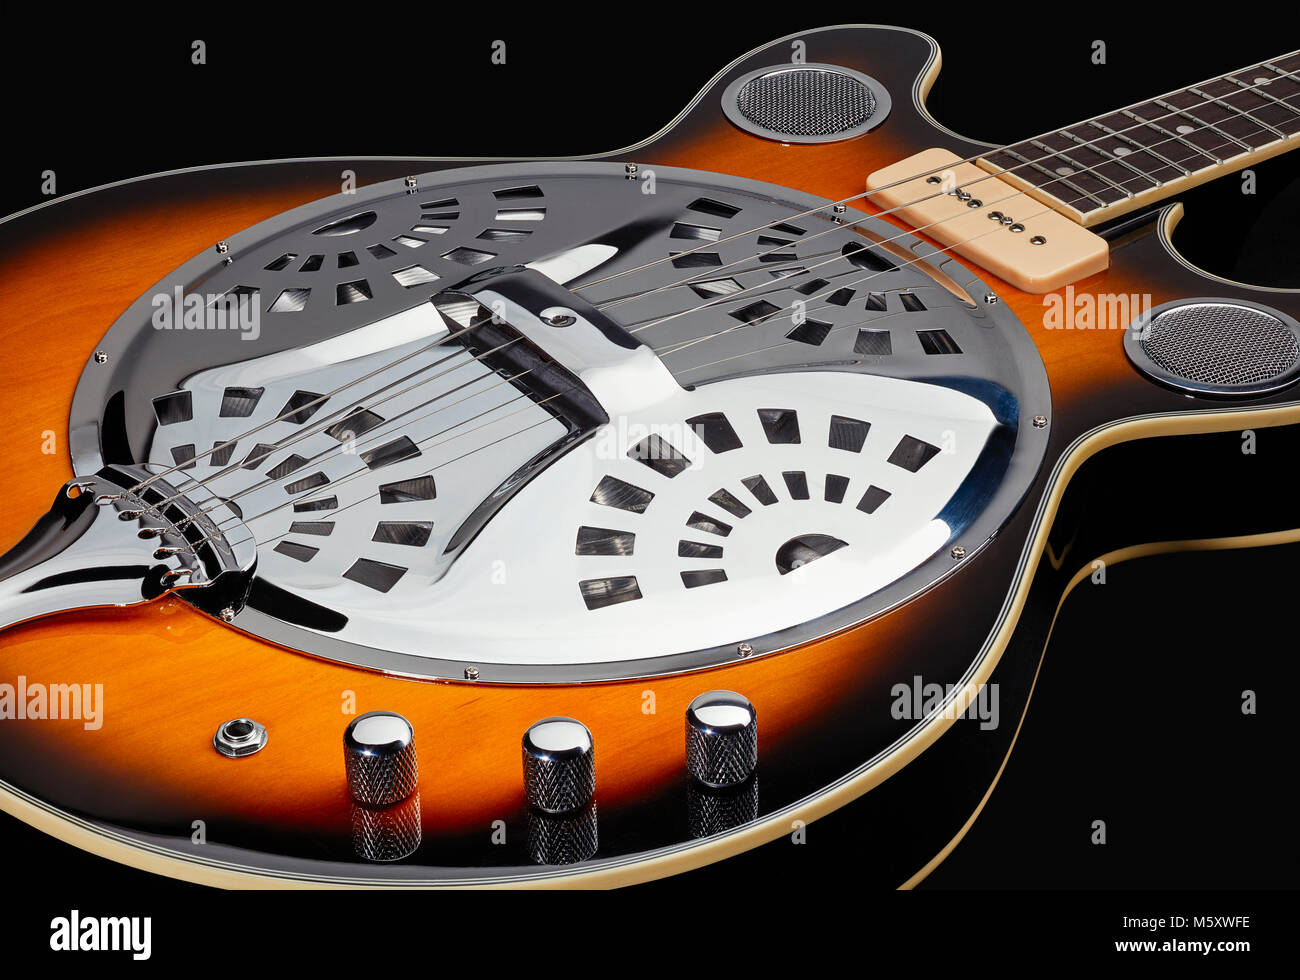 Eastwood Delta 4 tenor resonator guitar showing pick ups and controls - Stock Image